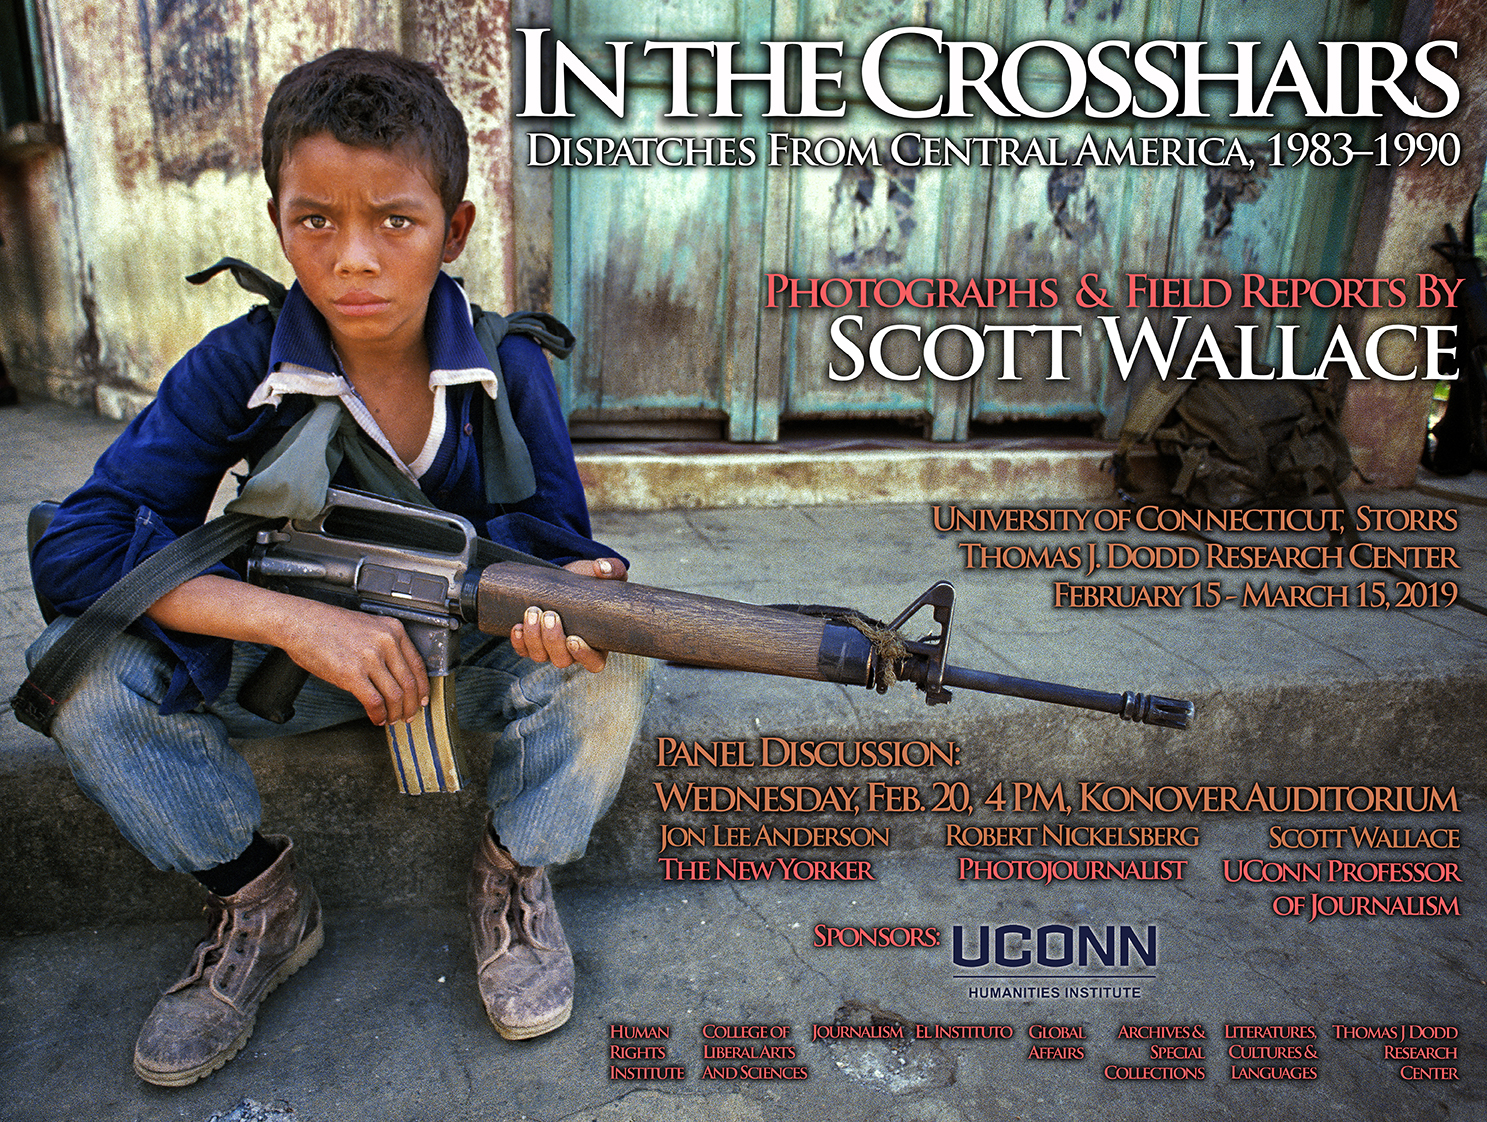 Poster of young boy with gun for In the Crosshairs talk